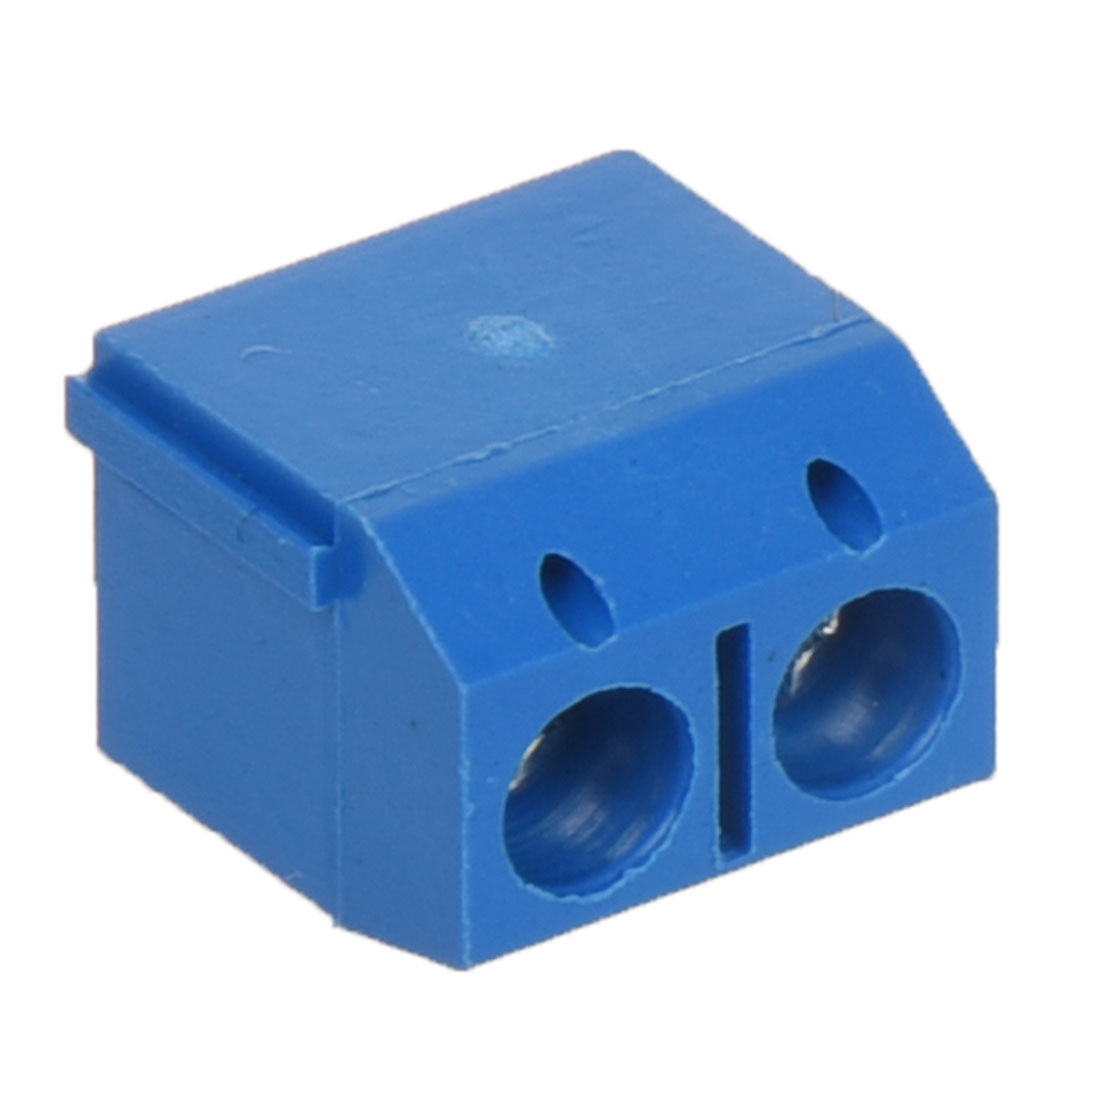 5 Pcs 2p 5mm Pitch Pcb Screw Terminal Block Connector Pk 50pcs 2pins Printed Circuit Board Terminals Us Total Size 10 X 8 14mm 04 03 06 Lwh Color Blue Weight 8g Package Content